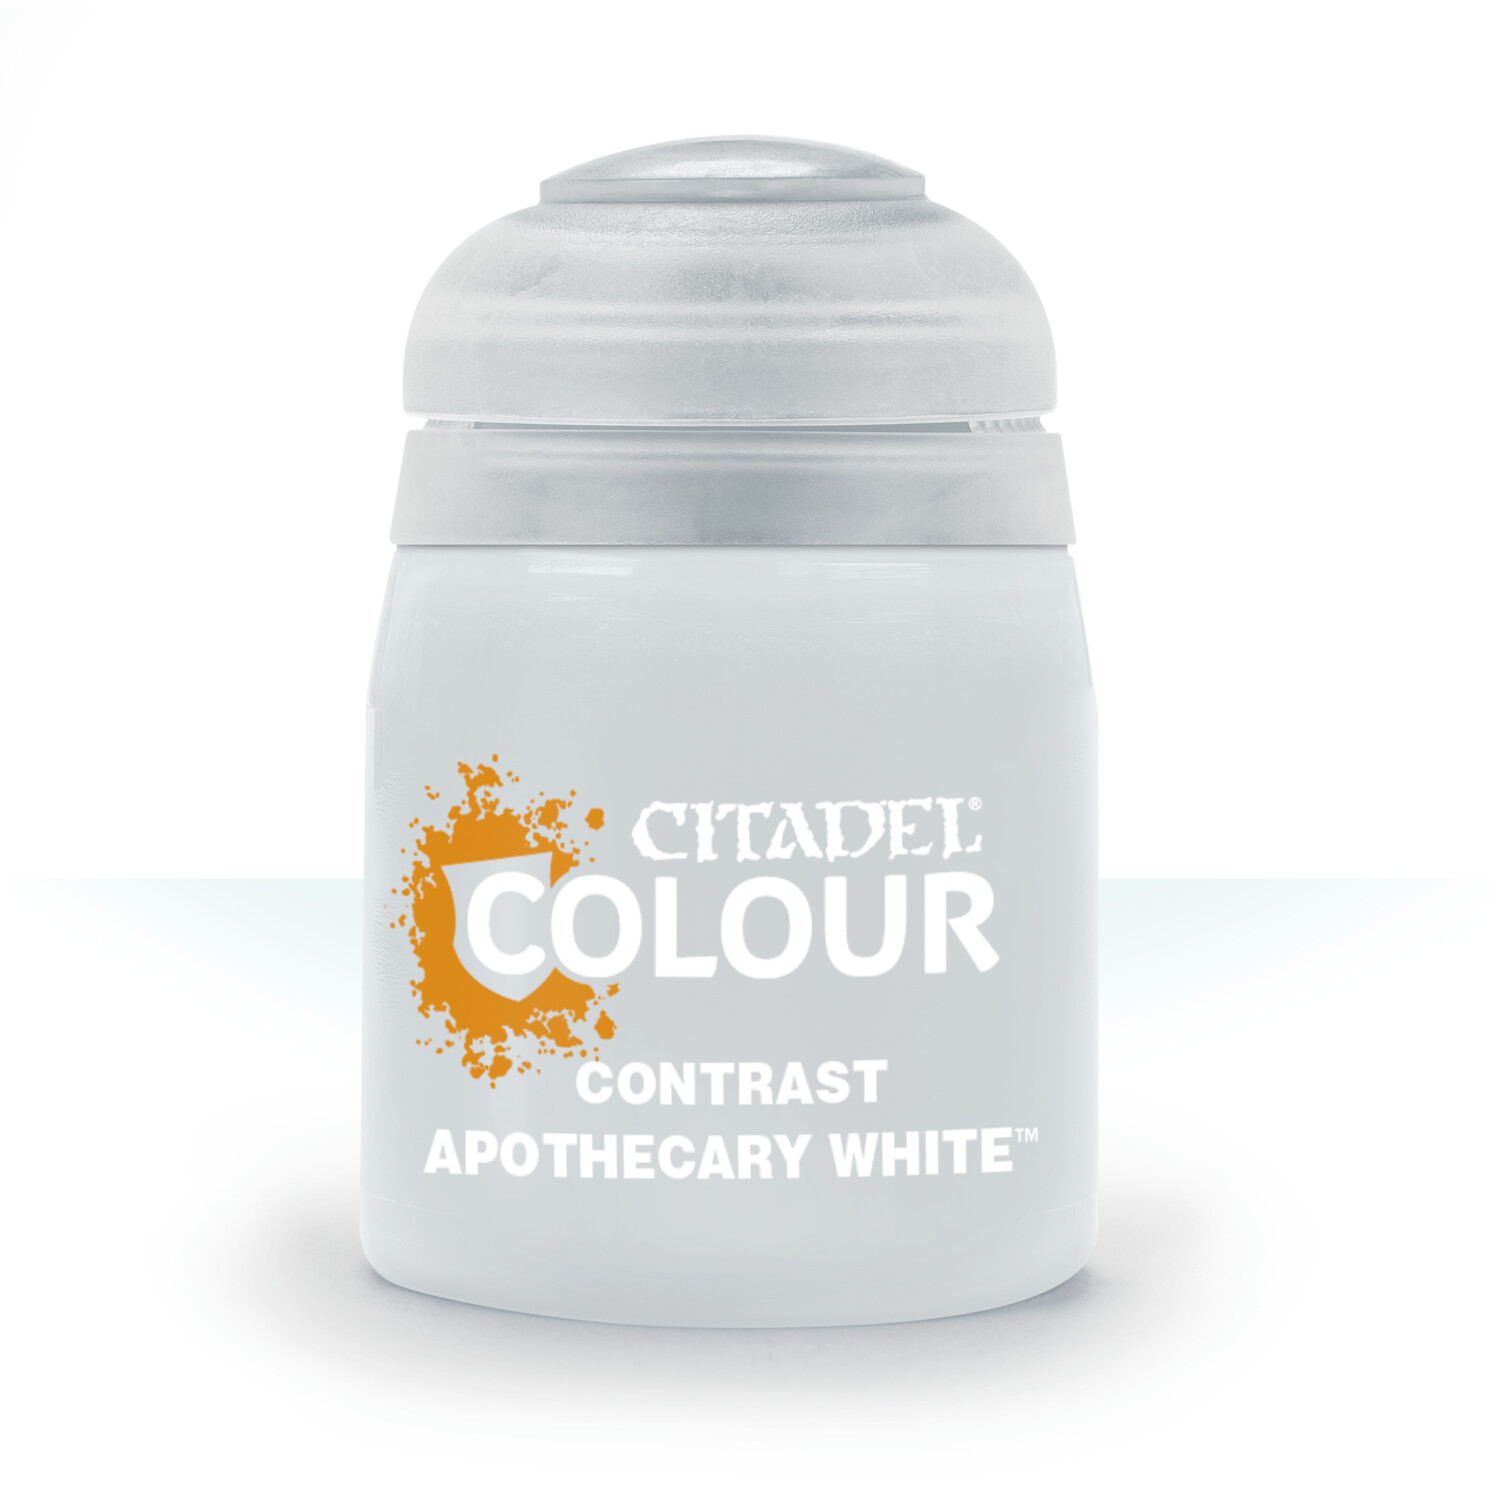 (Contrast) Apothecary White